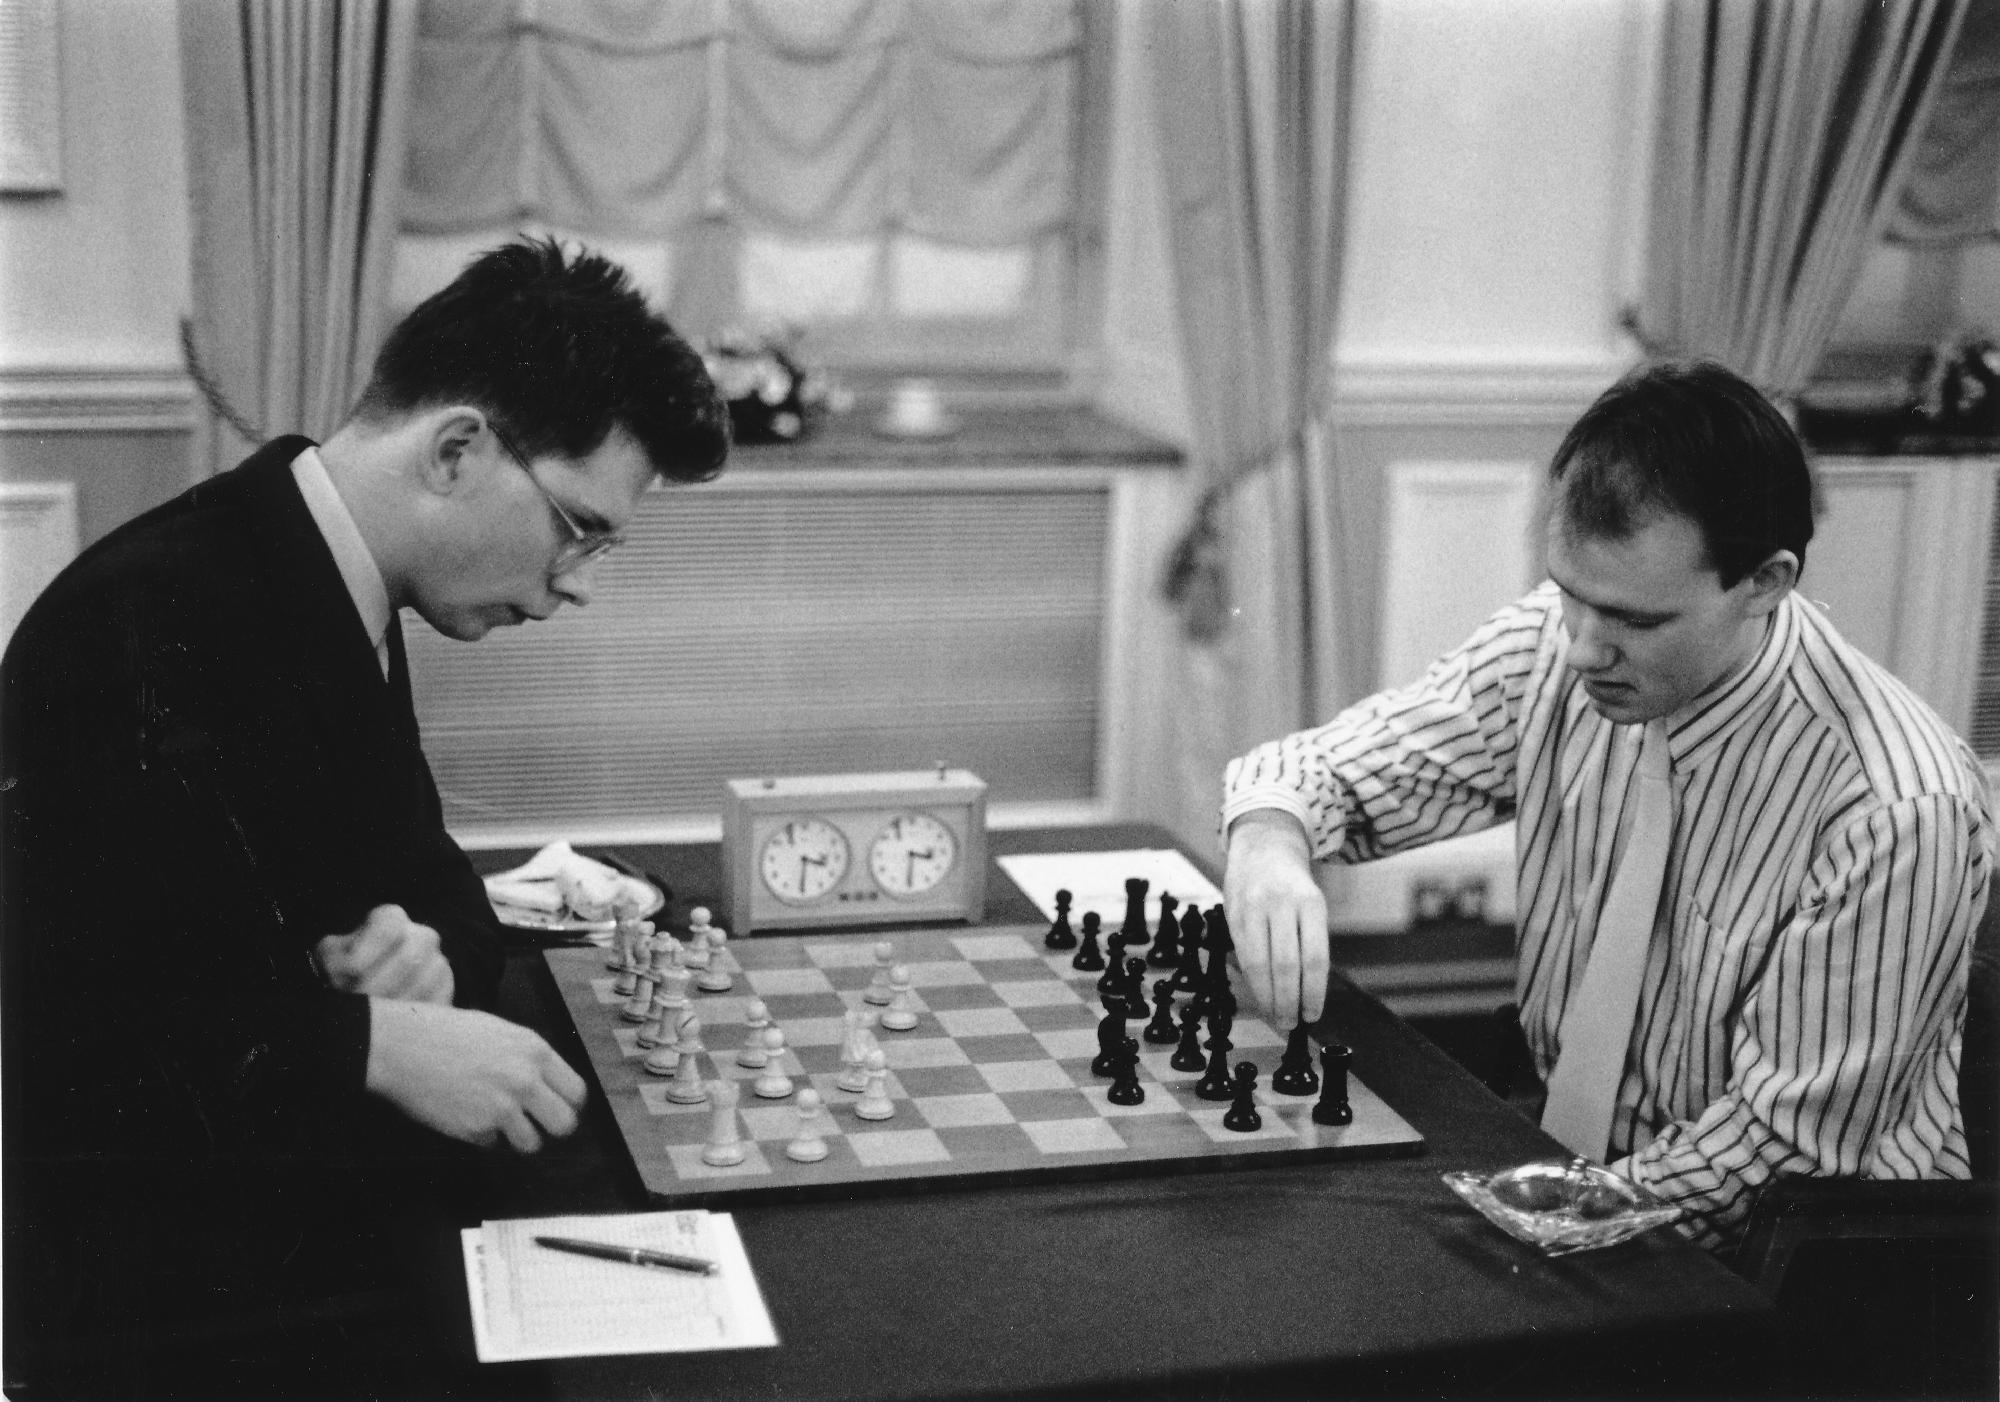 Oxford's IM James Howell (l) shapes up against Cambridge's FM Graham Burgess on top board in the Lloyds Bank Varsity match which Cambridge won 5.5 - 2.5. The players reeled off 19 moves of Yugoslav King's Indian theory before Howell established a dominant B vs N which won the Lloyds Bank trophy for the best Oxford game. Photograph by Lloyds Bank.